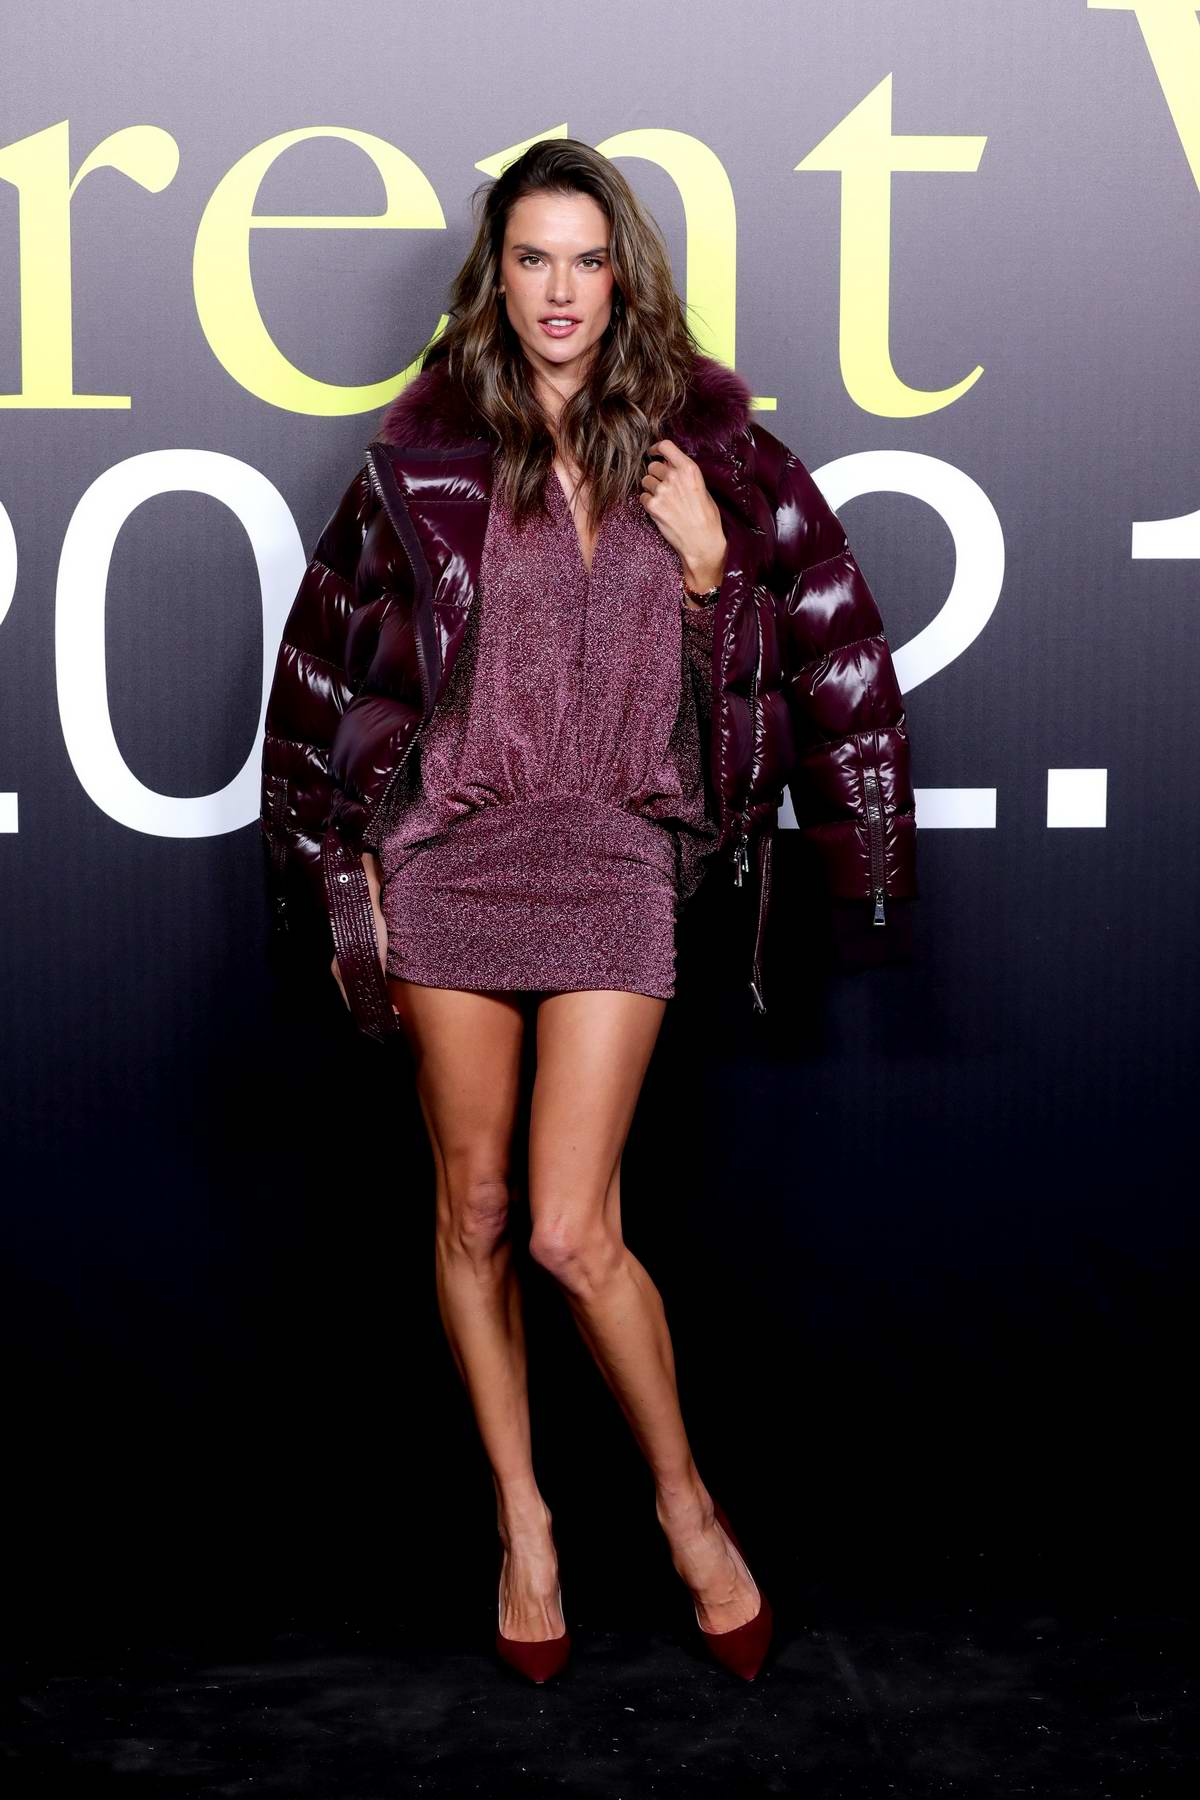 Alessandra Ambrosio attends the Moncler Genius Fall/Winter 2019 presentation during Milan Fashion Week in Milan, Italy